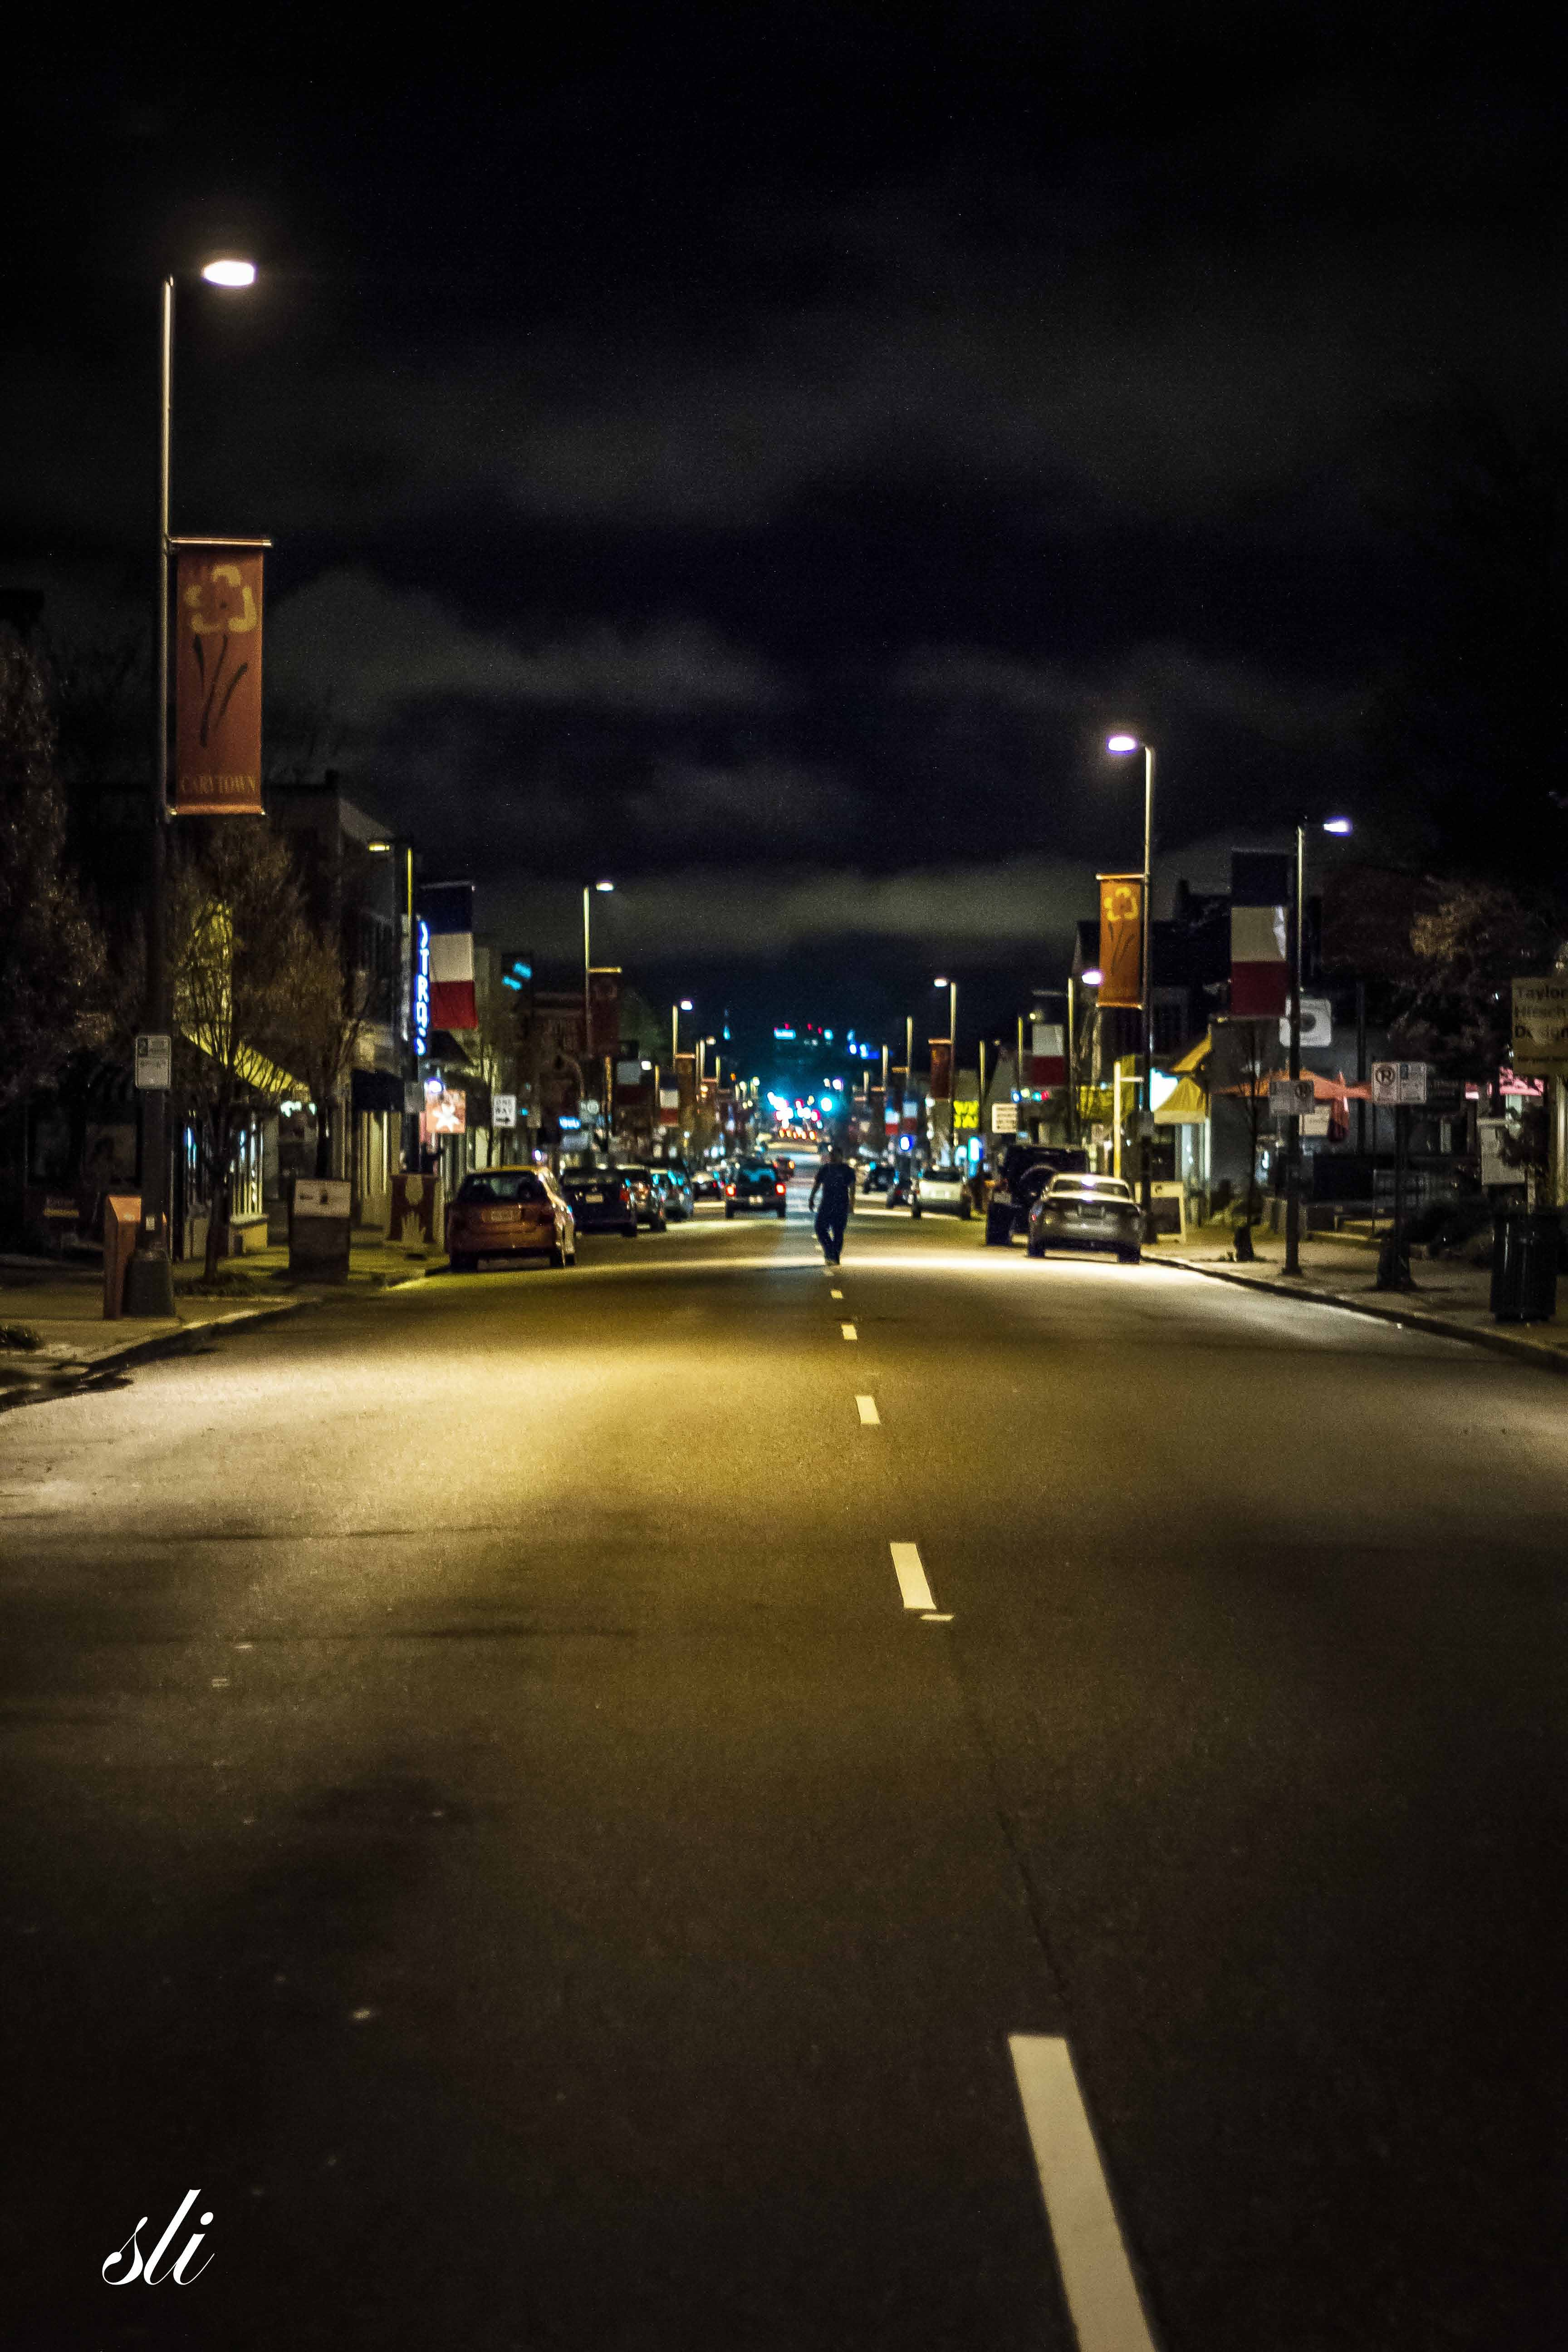 empty street – StillLifeImages (sliphoto.com)